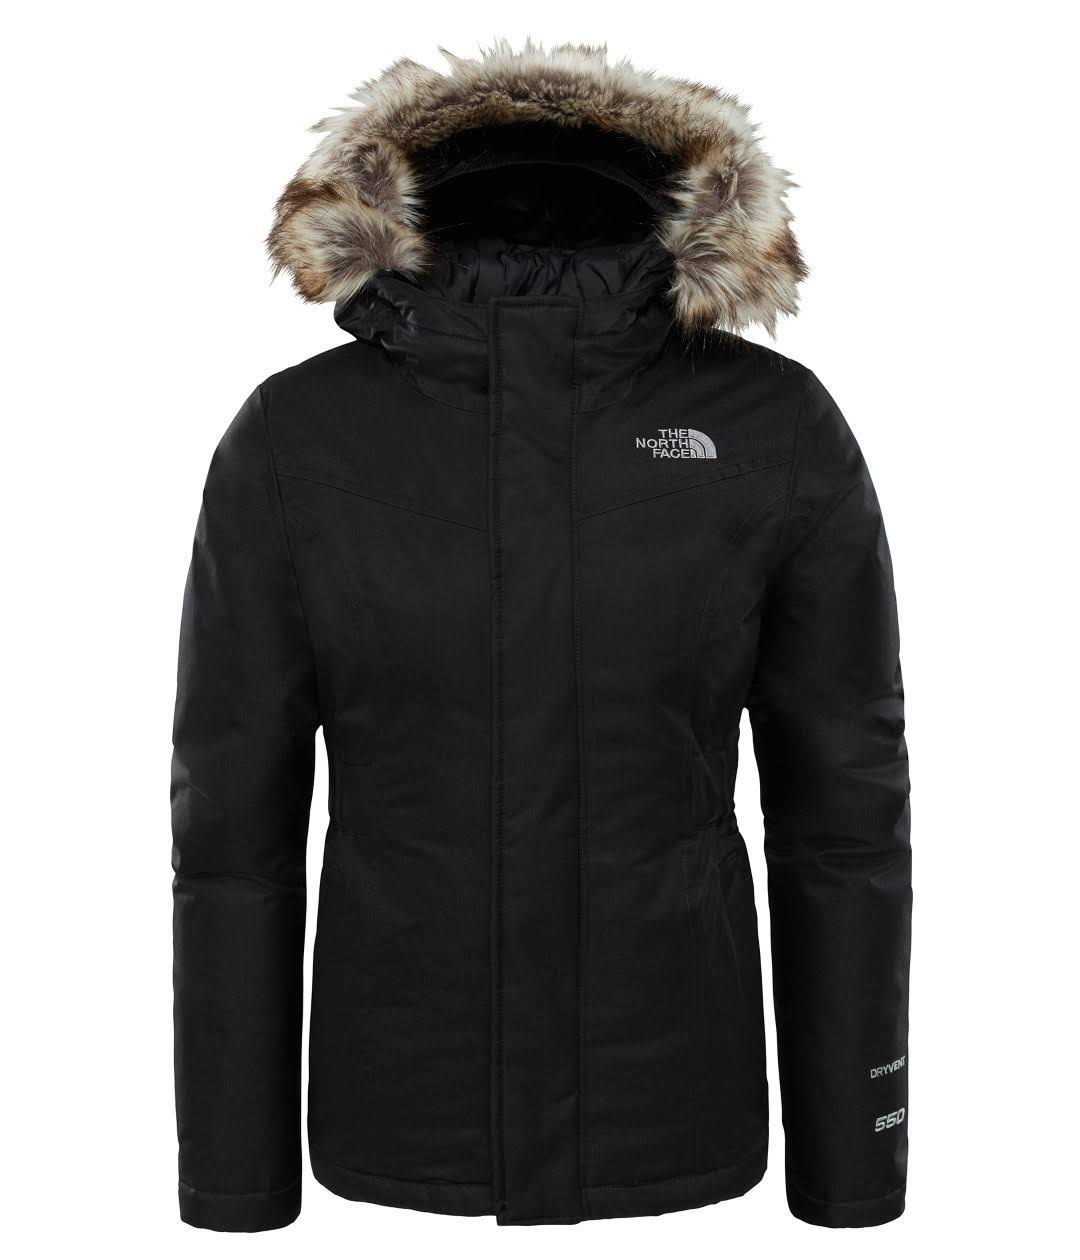 Girls The North Face Black Greenland Down Parka - Black